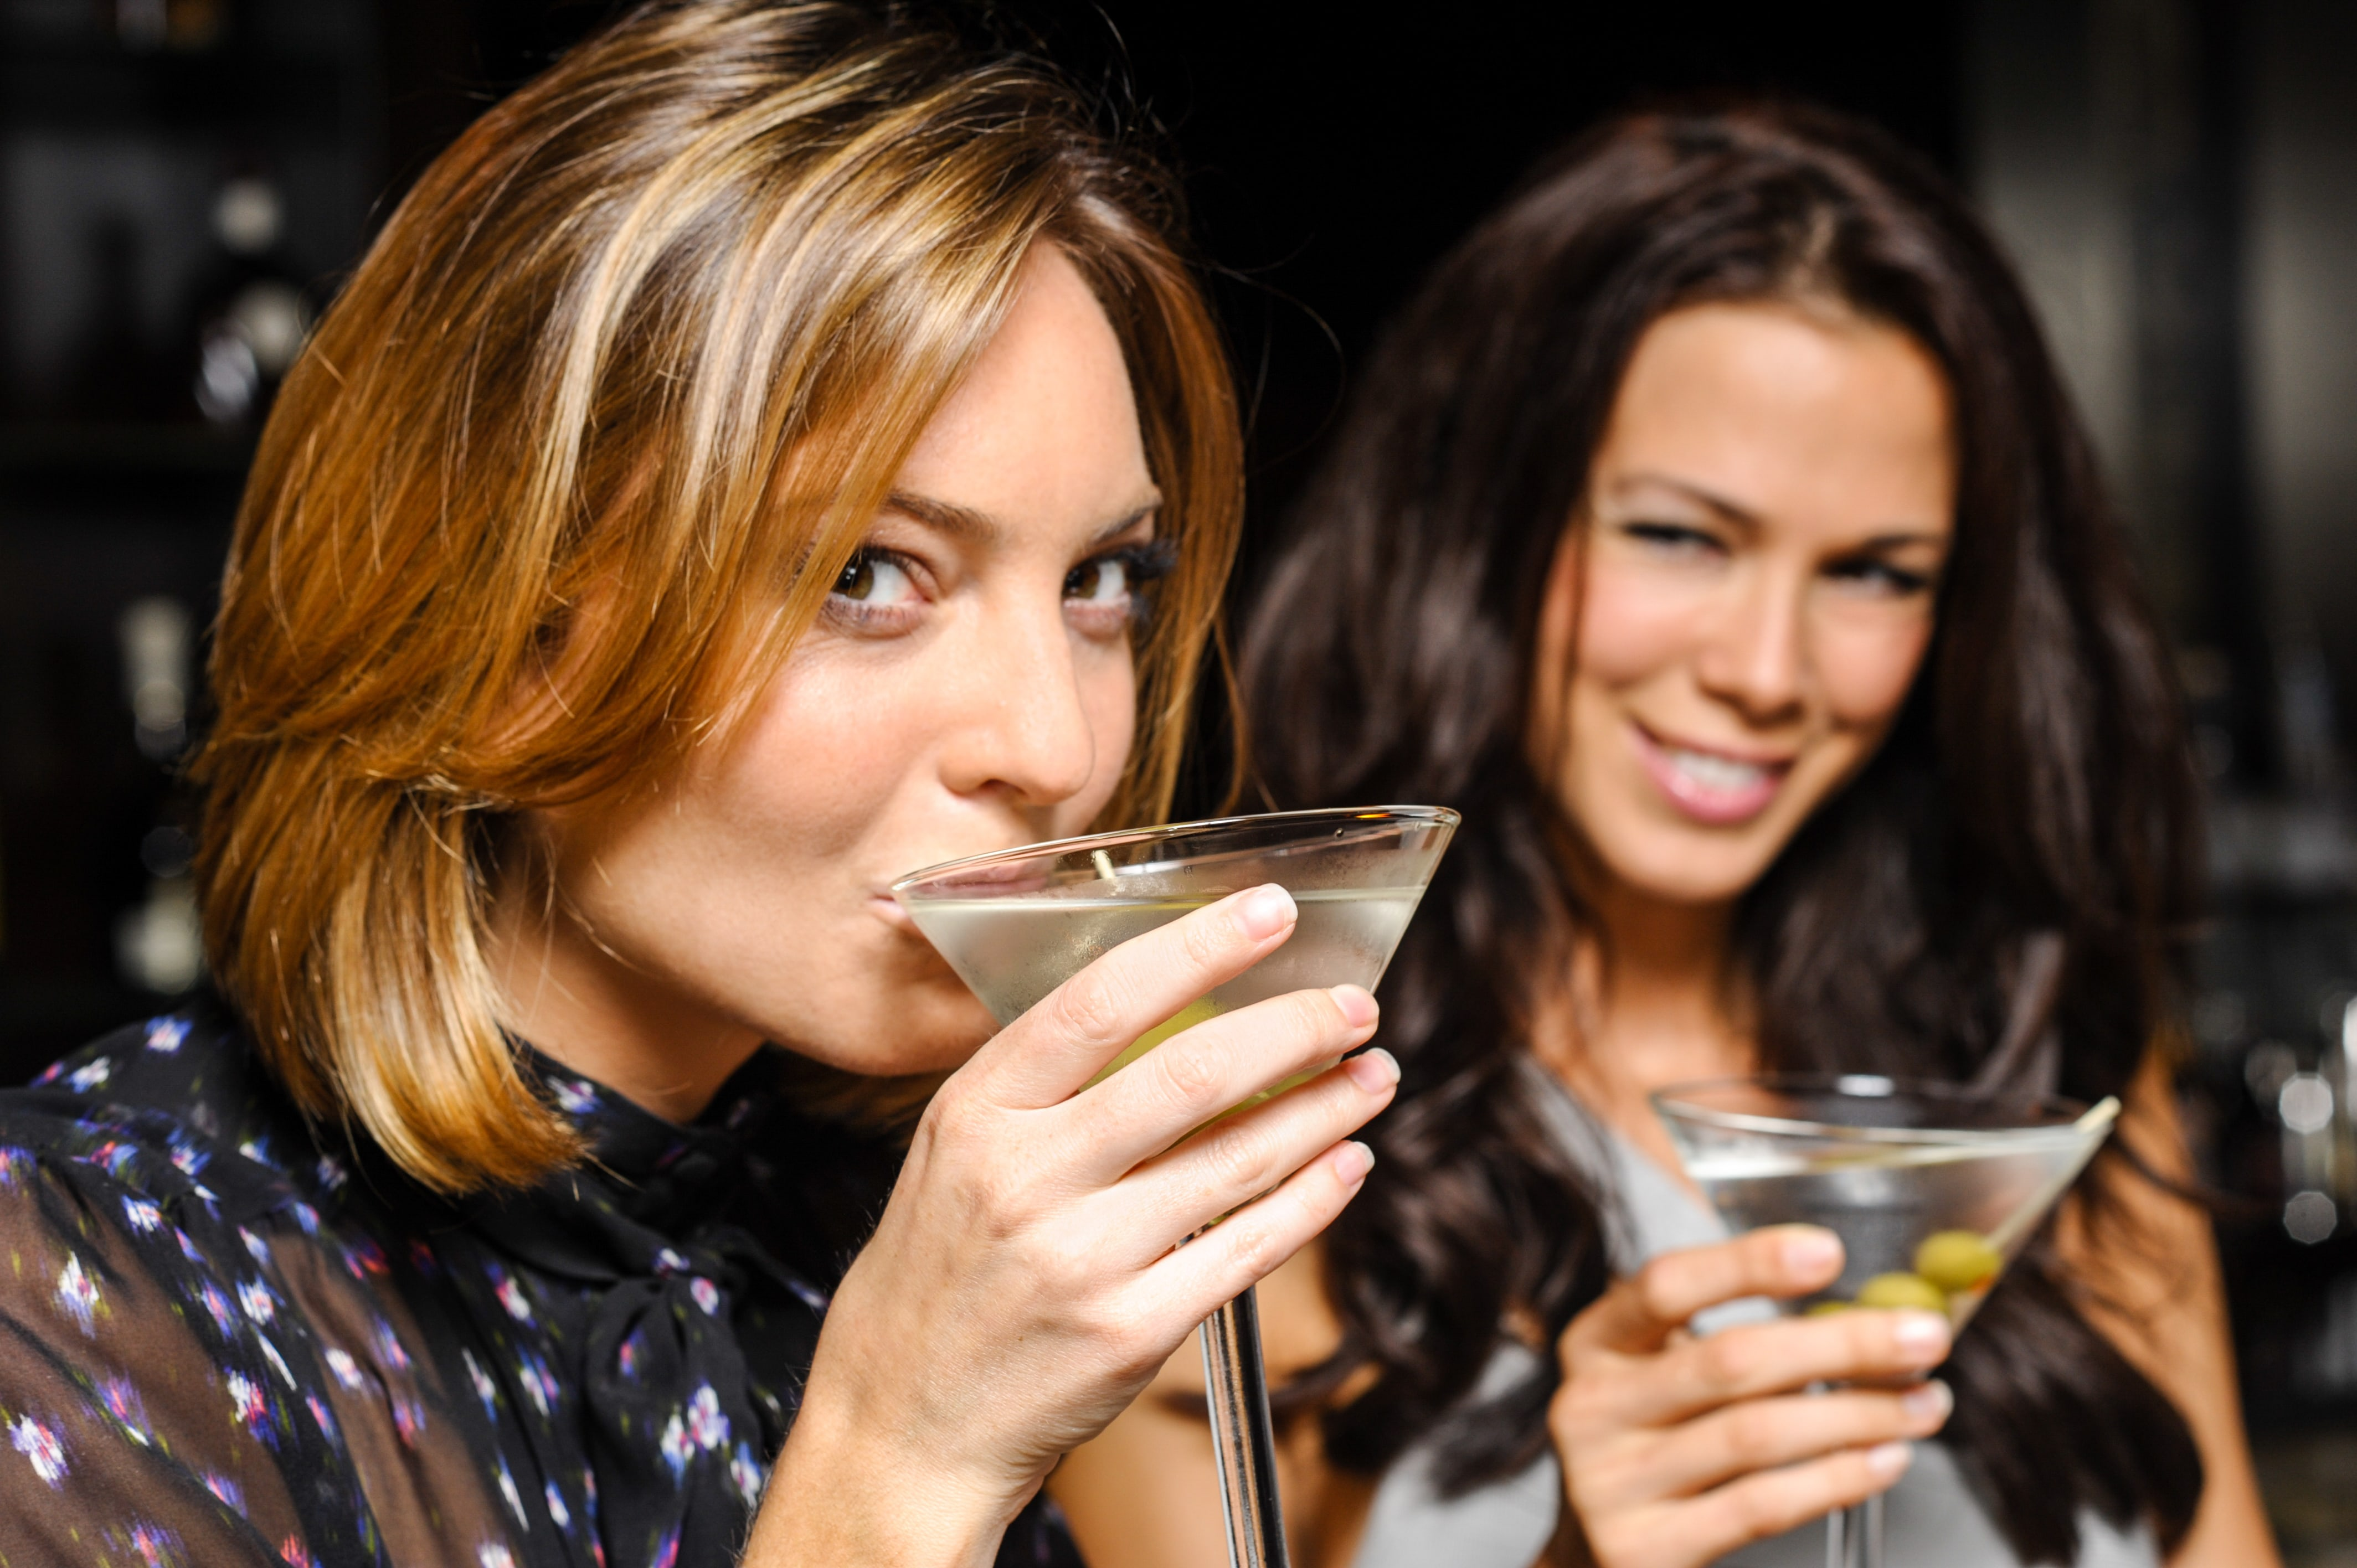 Why American Women Drink More - QuitAlcohol.com